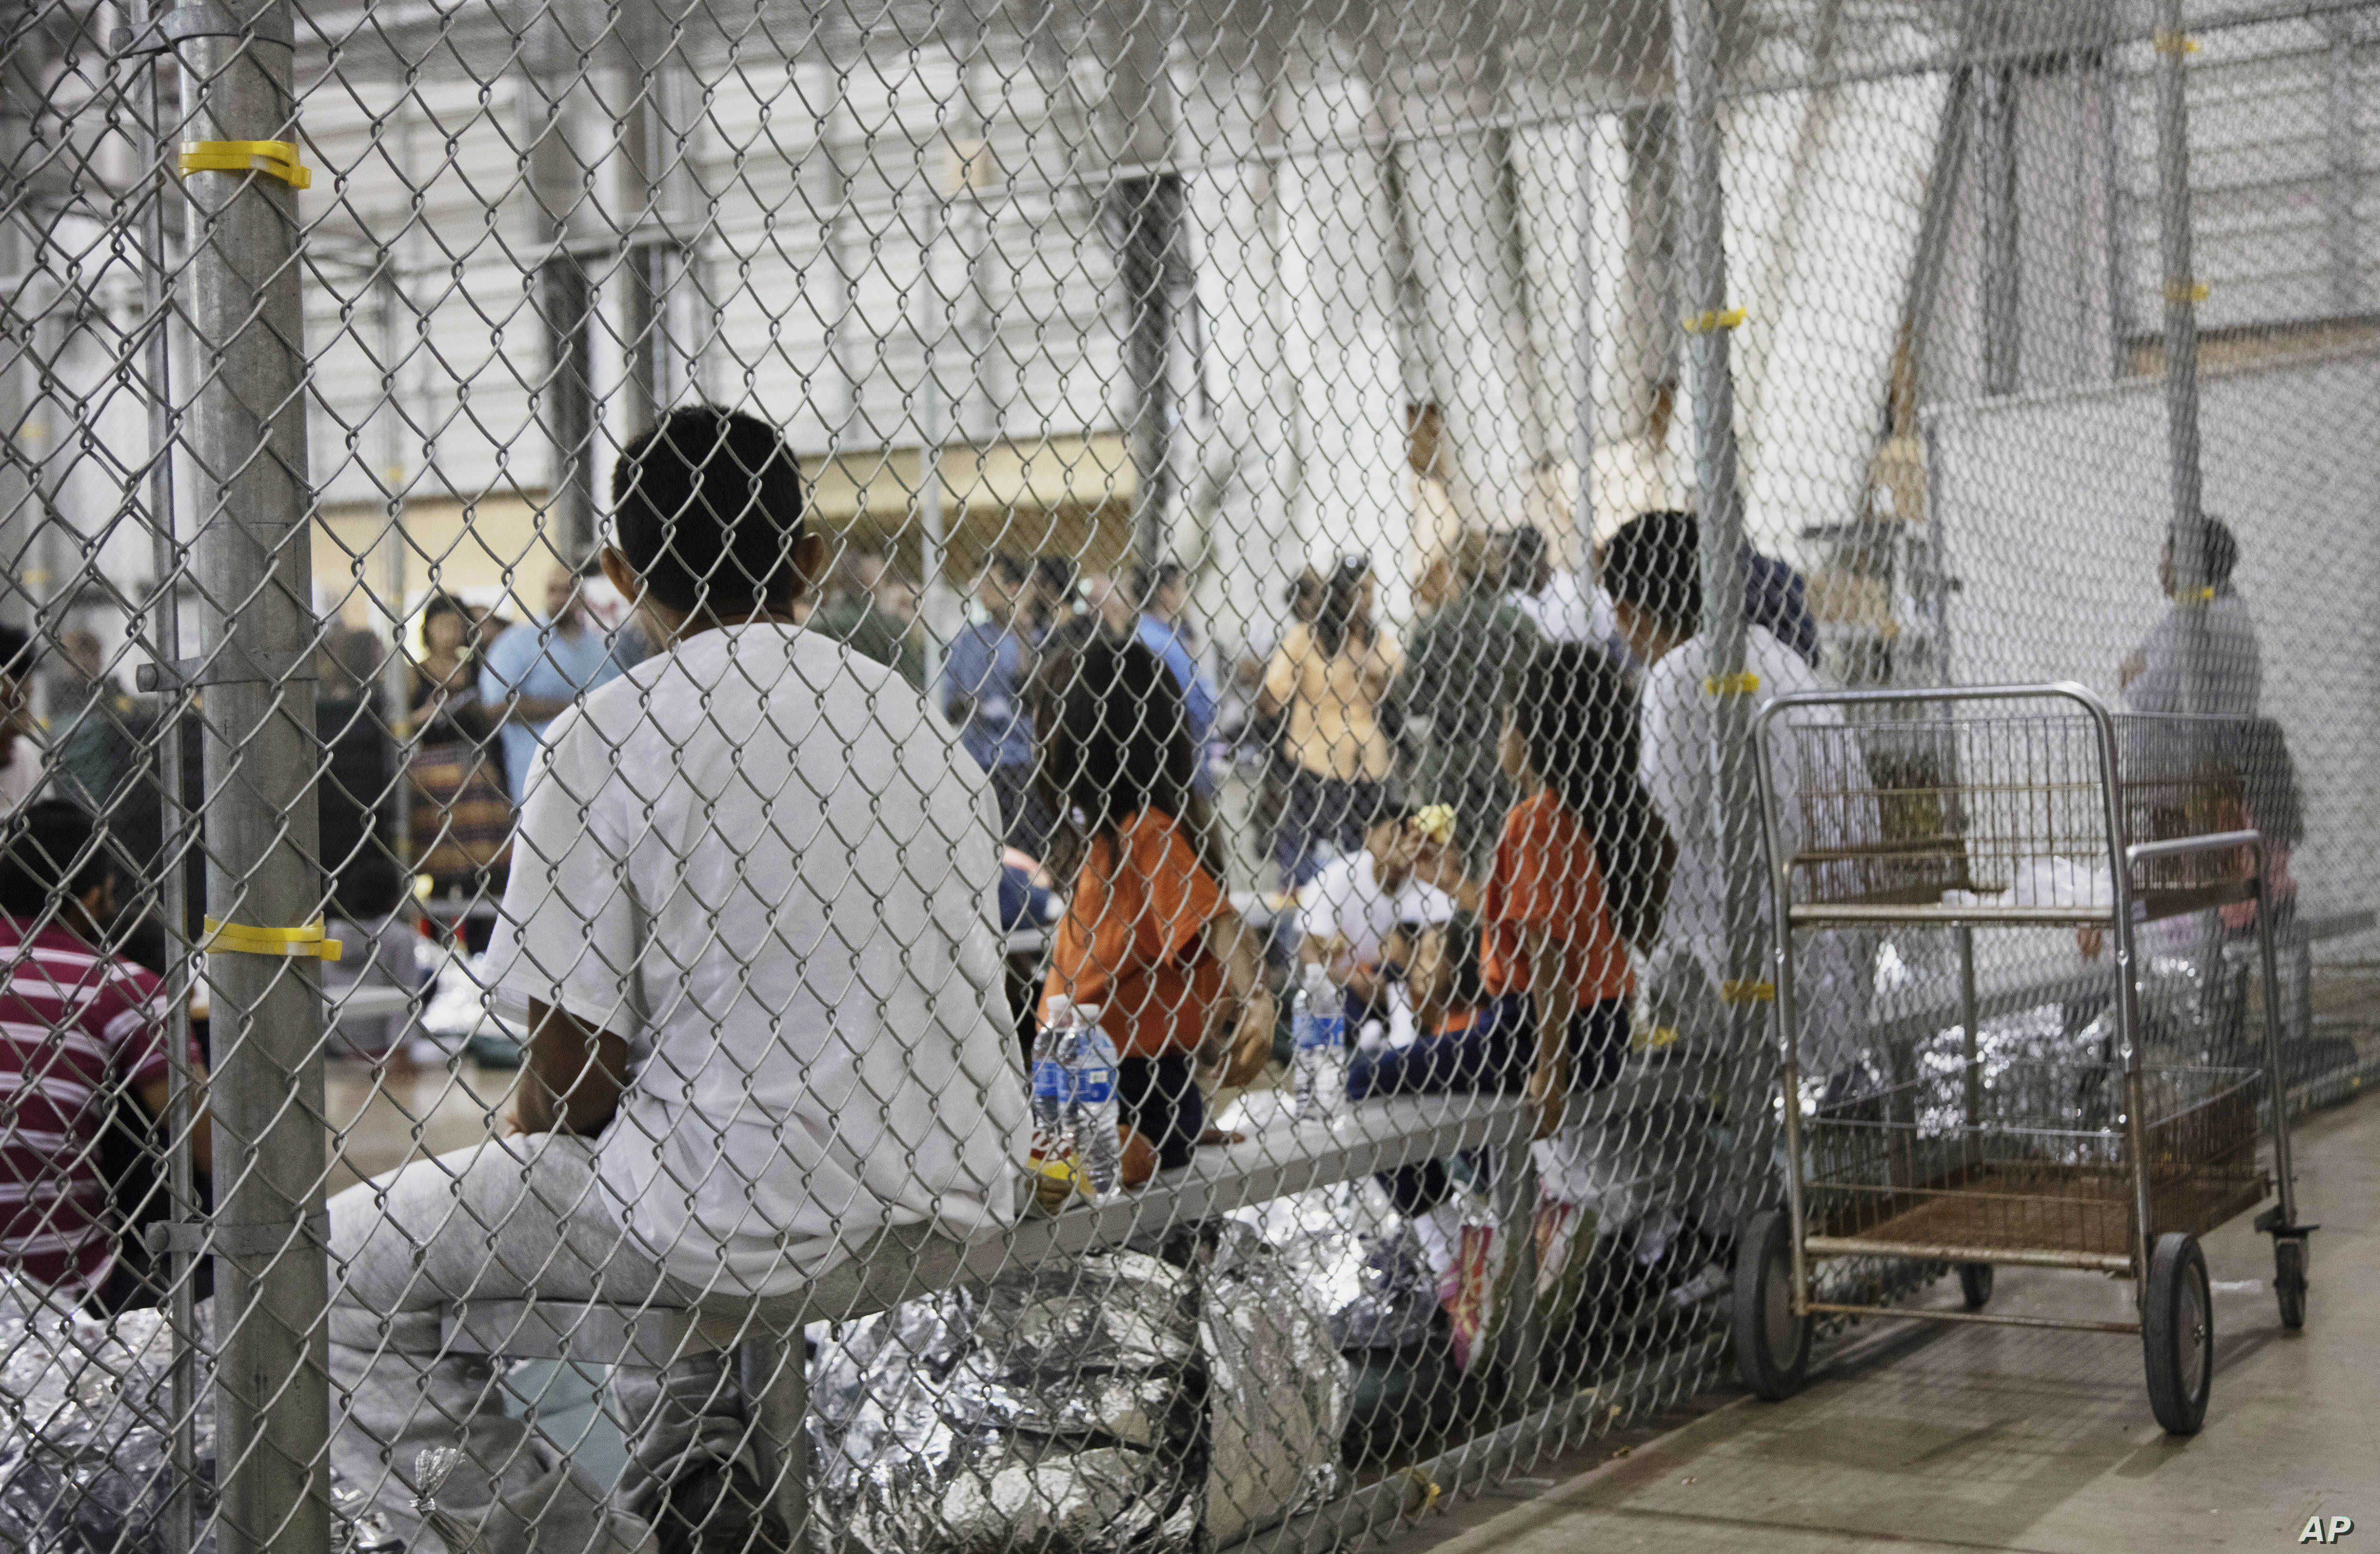 FILE - People who've been taken into custody related to cases of illegal entry into the United States, sit in one of the cages at a facility in McAllen, Texas, June 17, 2018. Records obtained by The Associated Press highlight some of the problems tha...